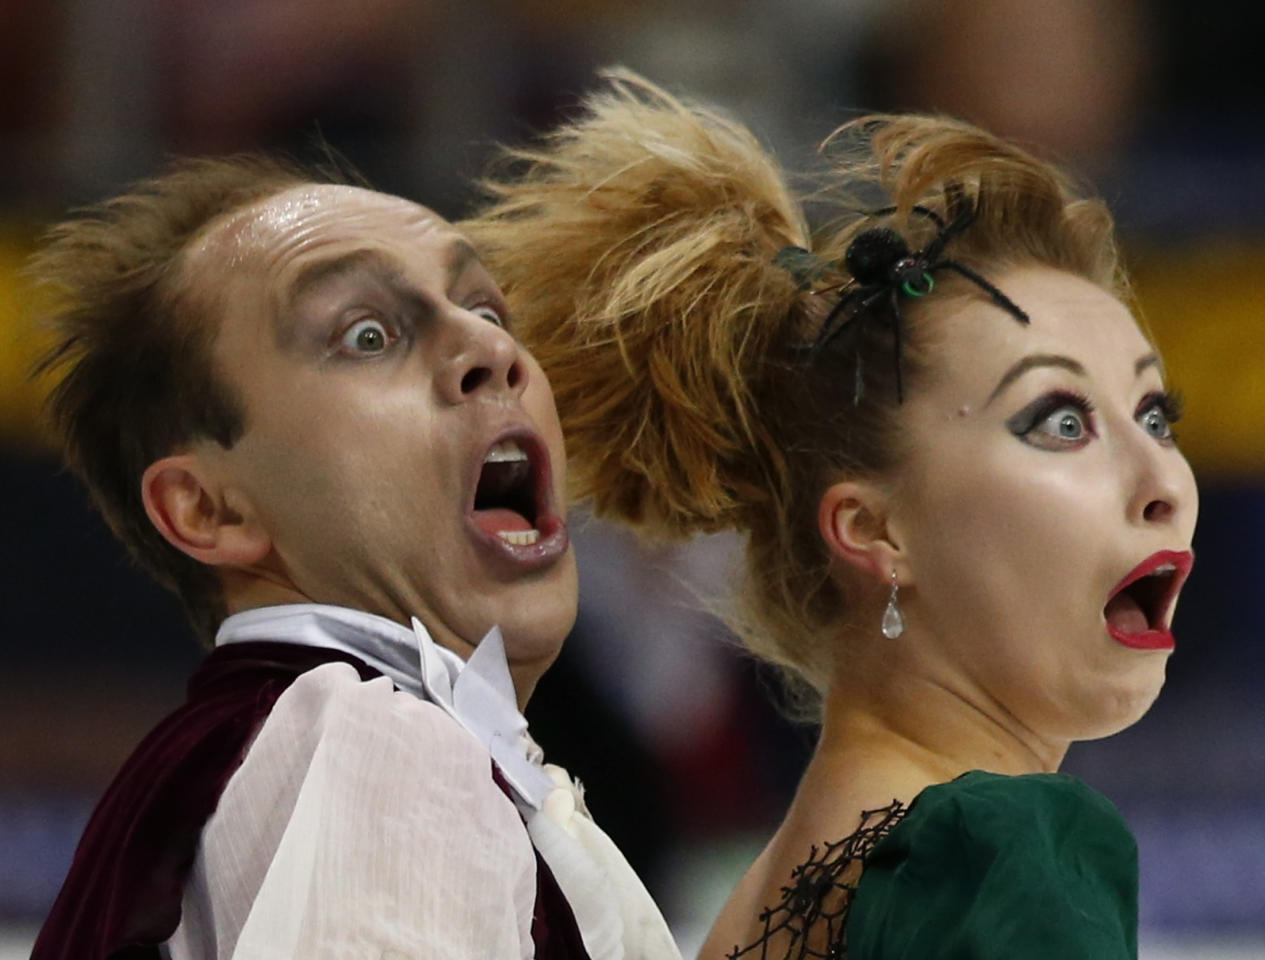 Germany's Nelli Zhiganshina and Alexander Gazsi perform during the ice dance free program at the ISU Grand Prix of Figure Skating Rostelecom Cup in Moscow, November 10, 2012.     REUTERS/Grigory Dukor (RUSSIA  - Tags: SPORT FIGURE SKATING)